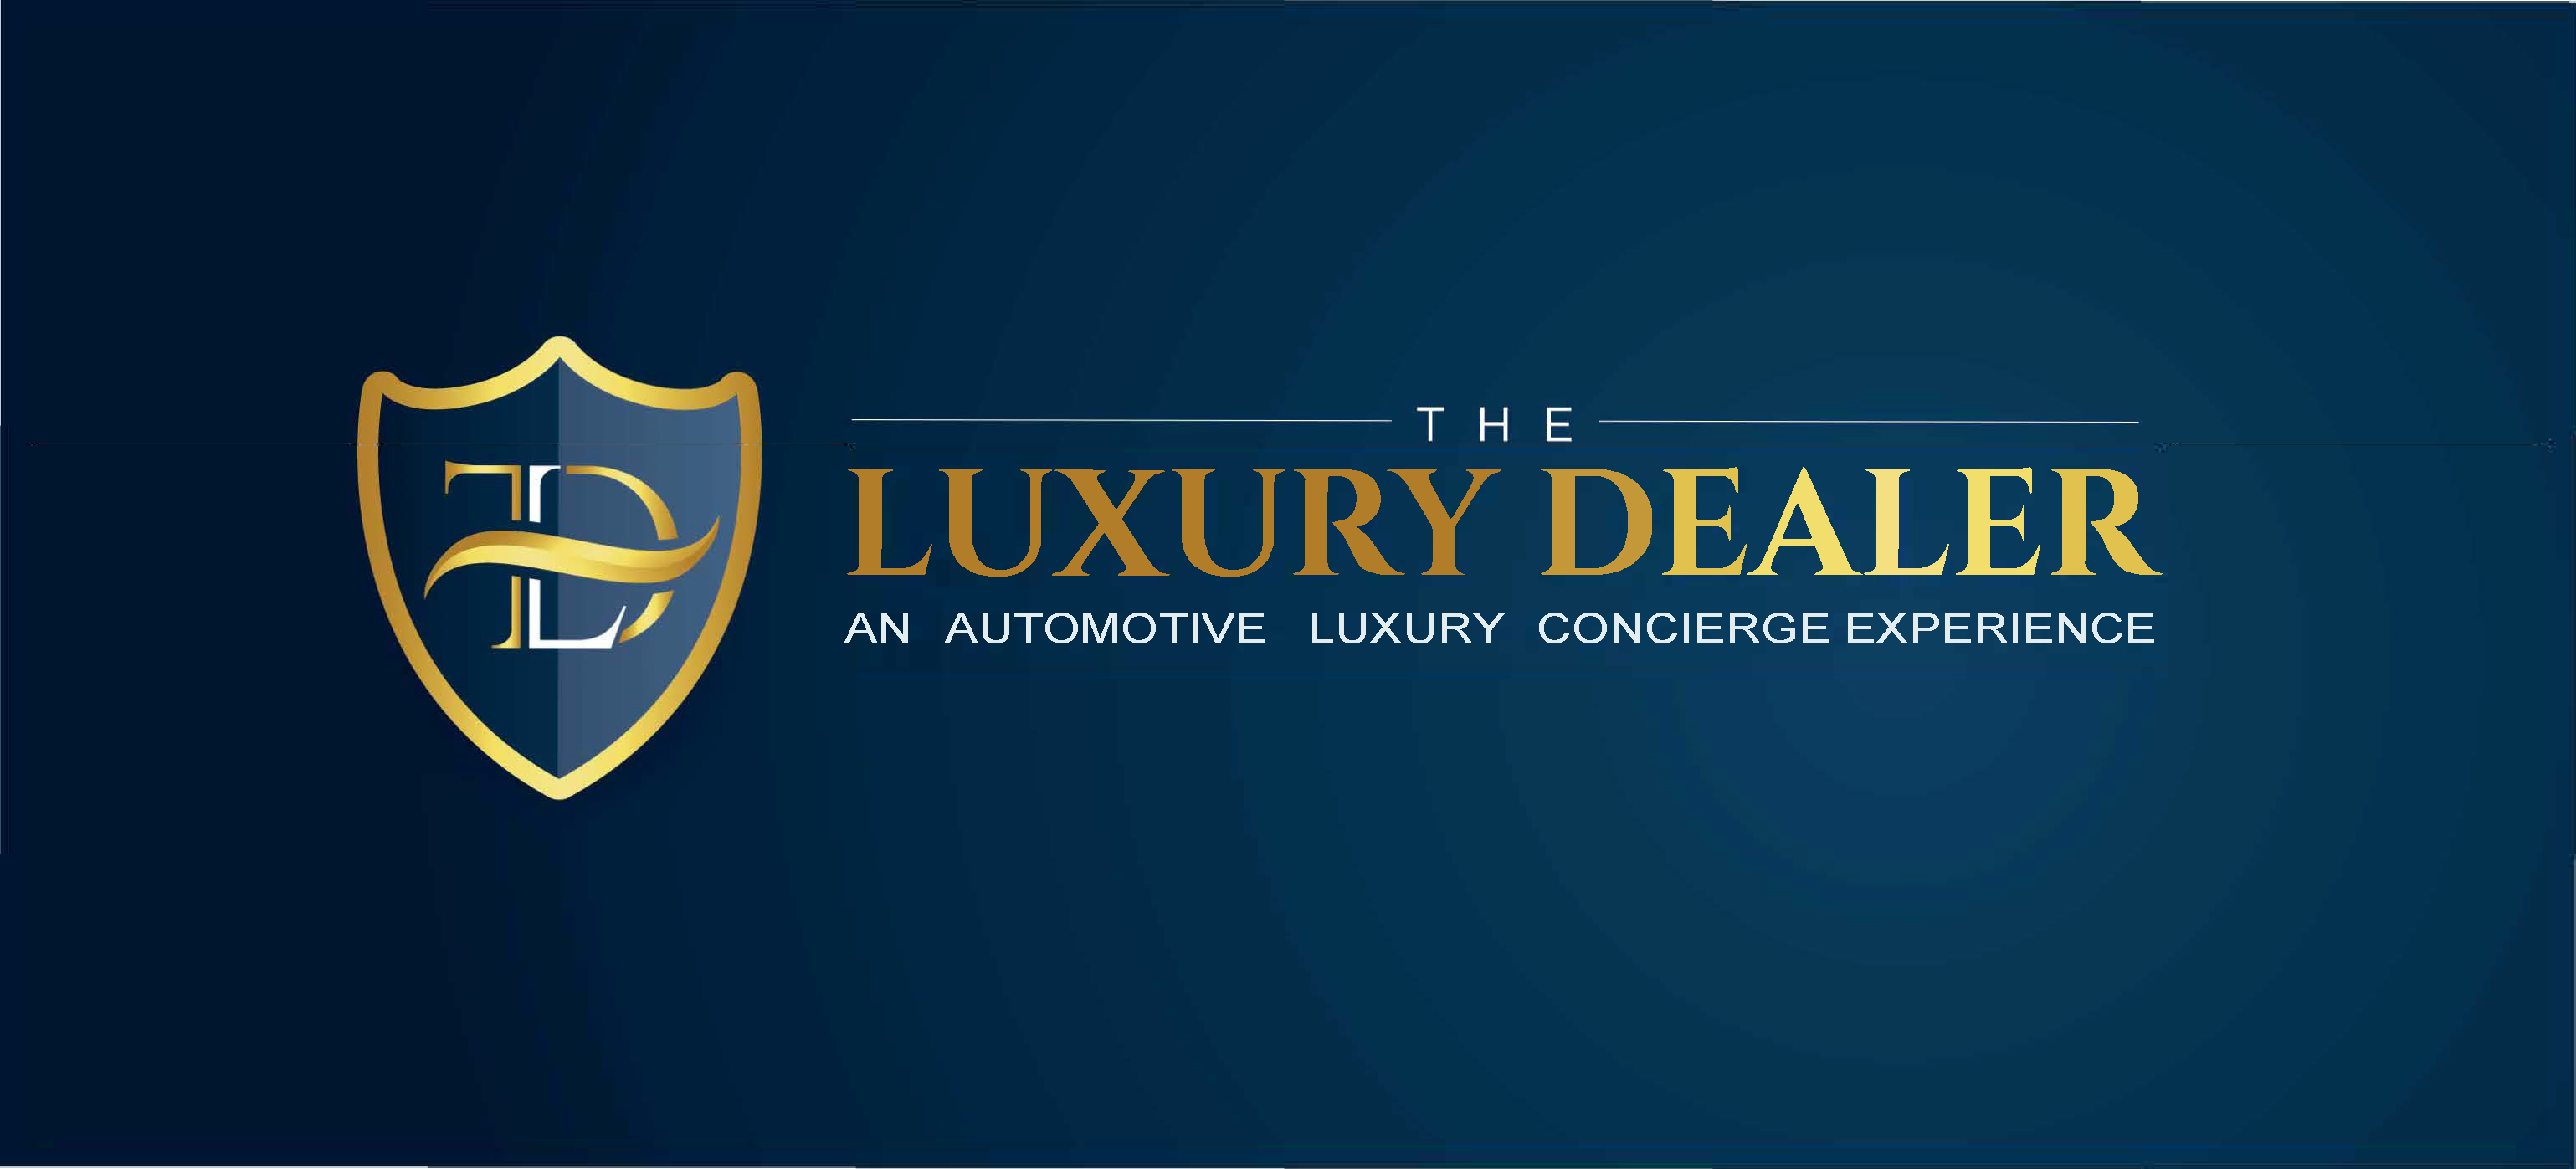 The Luxury Dealer